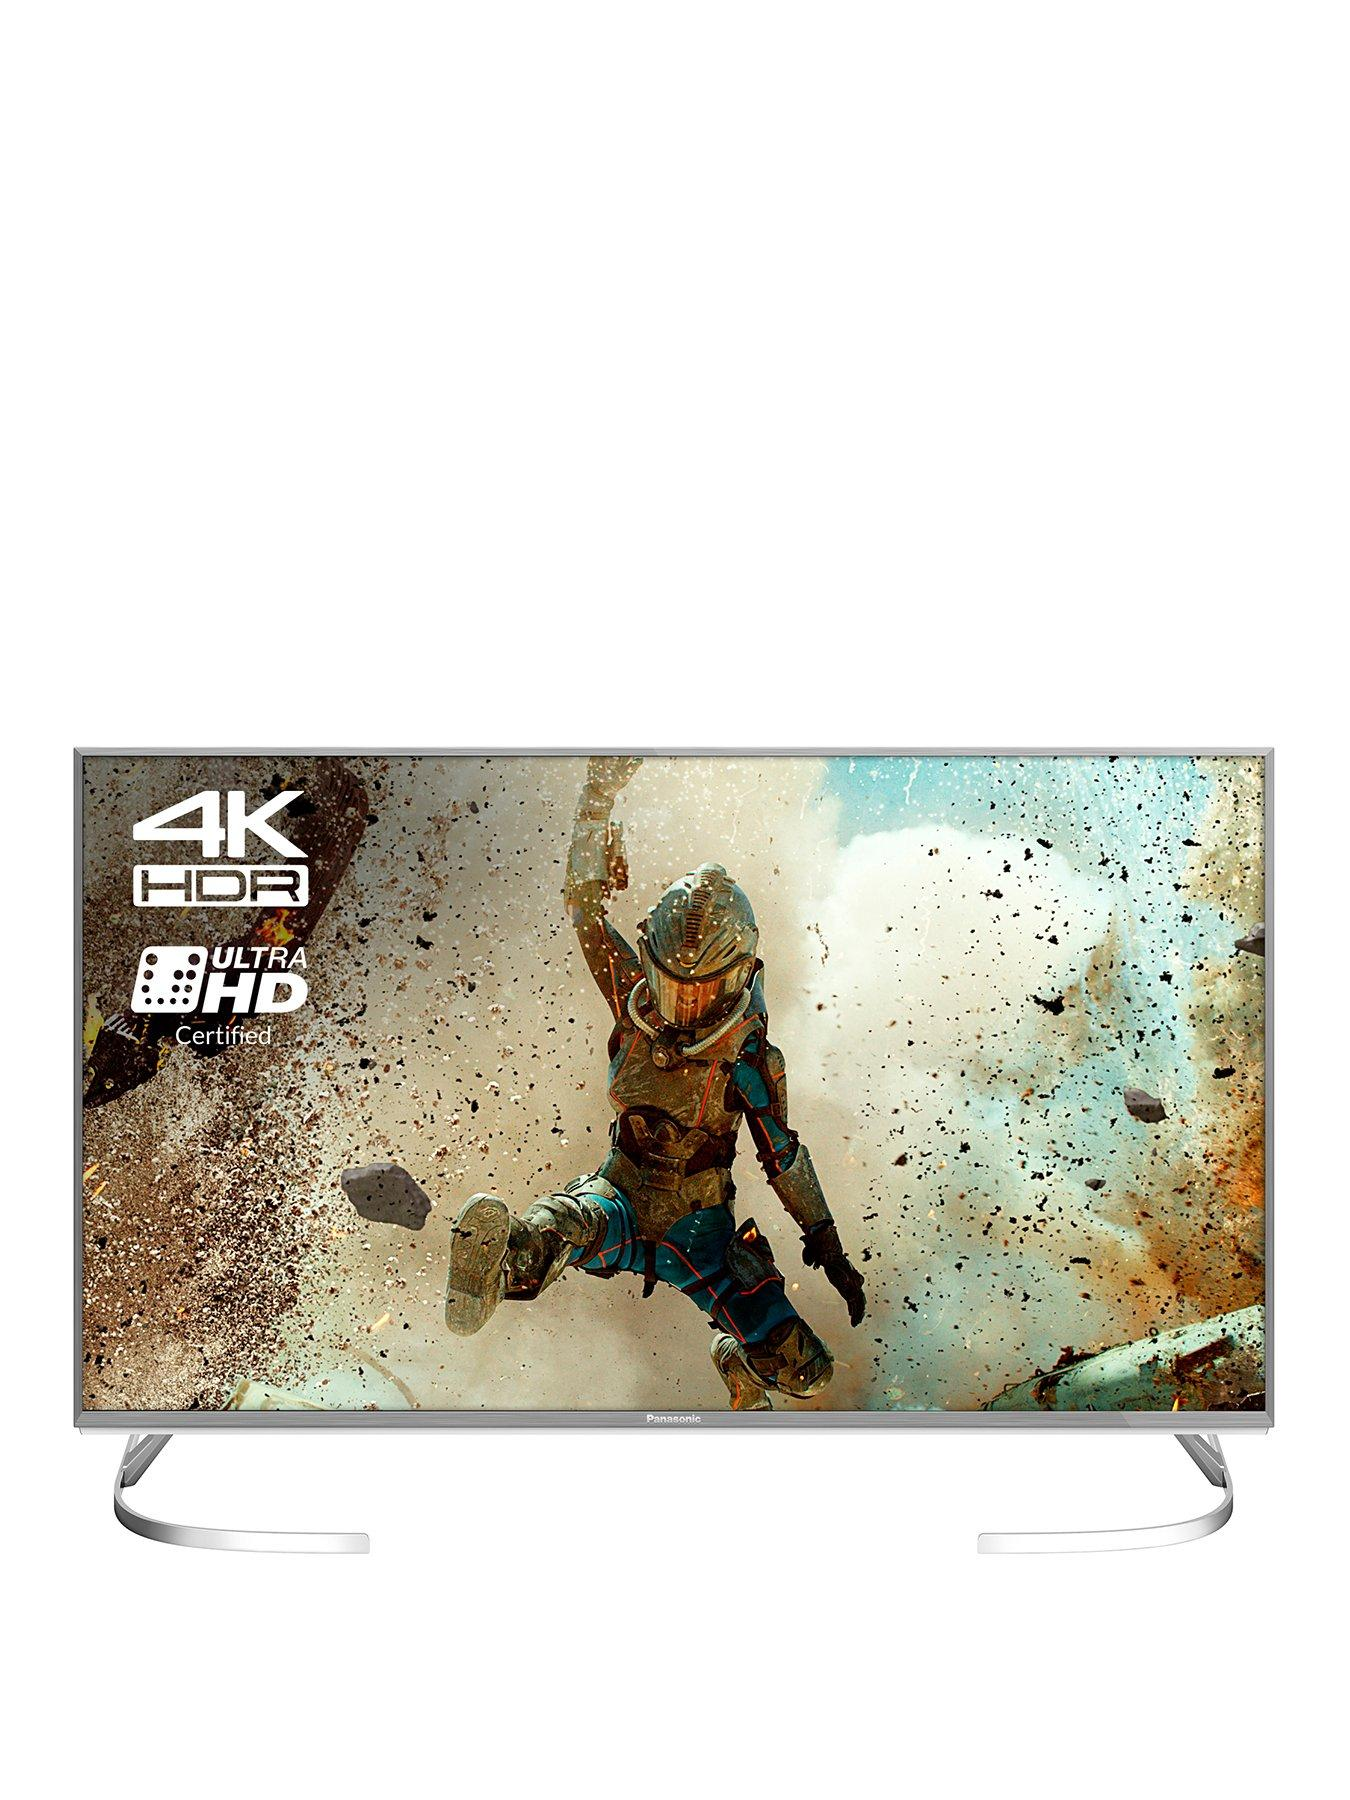 TX-40EX700B 40 inch, 4K Ultra HD Certified�HDR, Freeview Play, Smart LED TV.